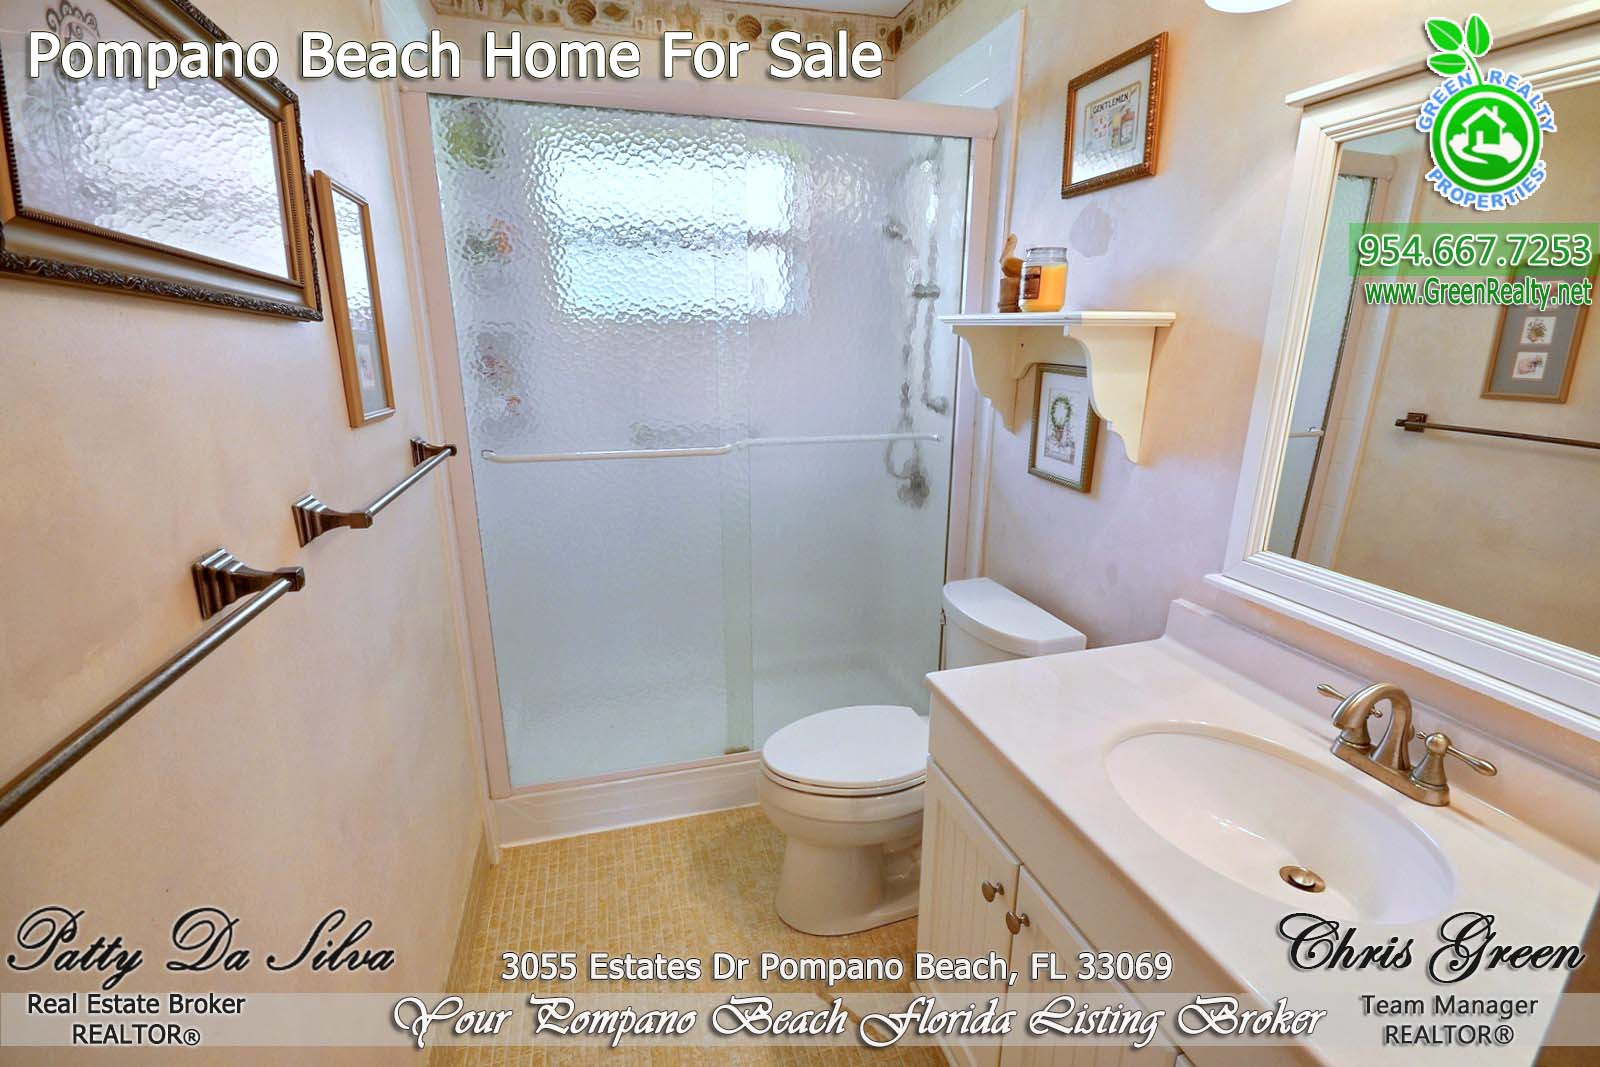 22 Patty Da Silva SELLS Pompano Beach Homes (2)